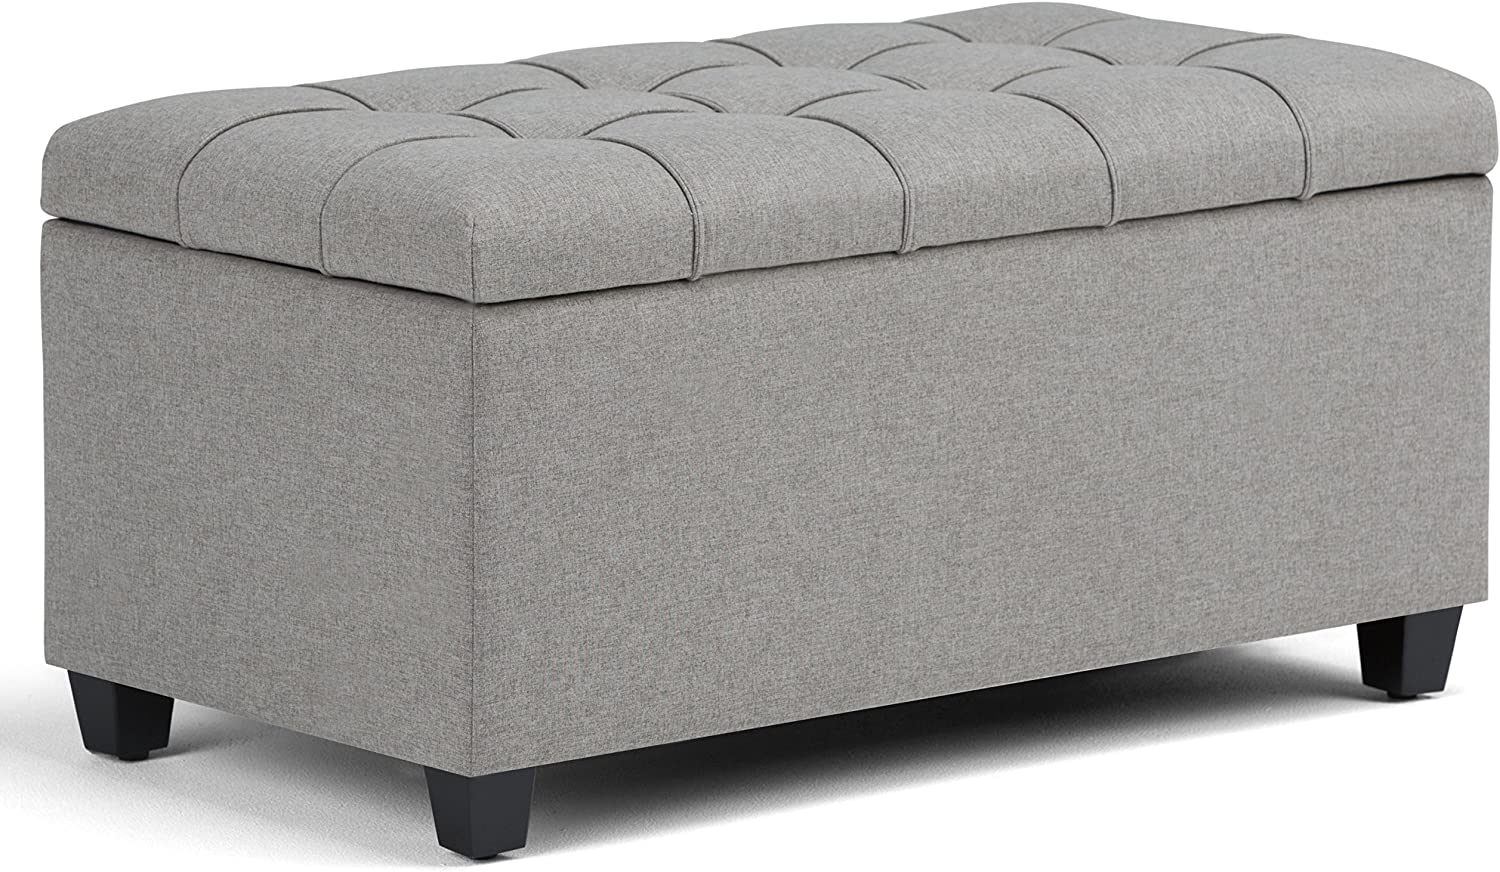 Simpli Home Sienna 34 inch Wide Rectangle Lift Top Storage Ottoman Bench in Dove Grey Tufted Linen Look Fabric, Footrest Stool, Coffee Table for the Living Room, Bedroom and Kids Room, Traditional